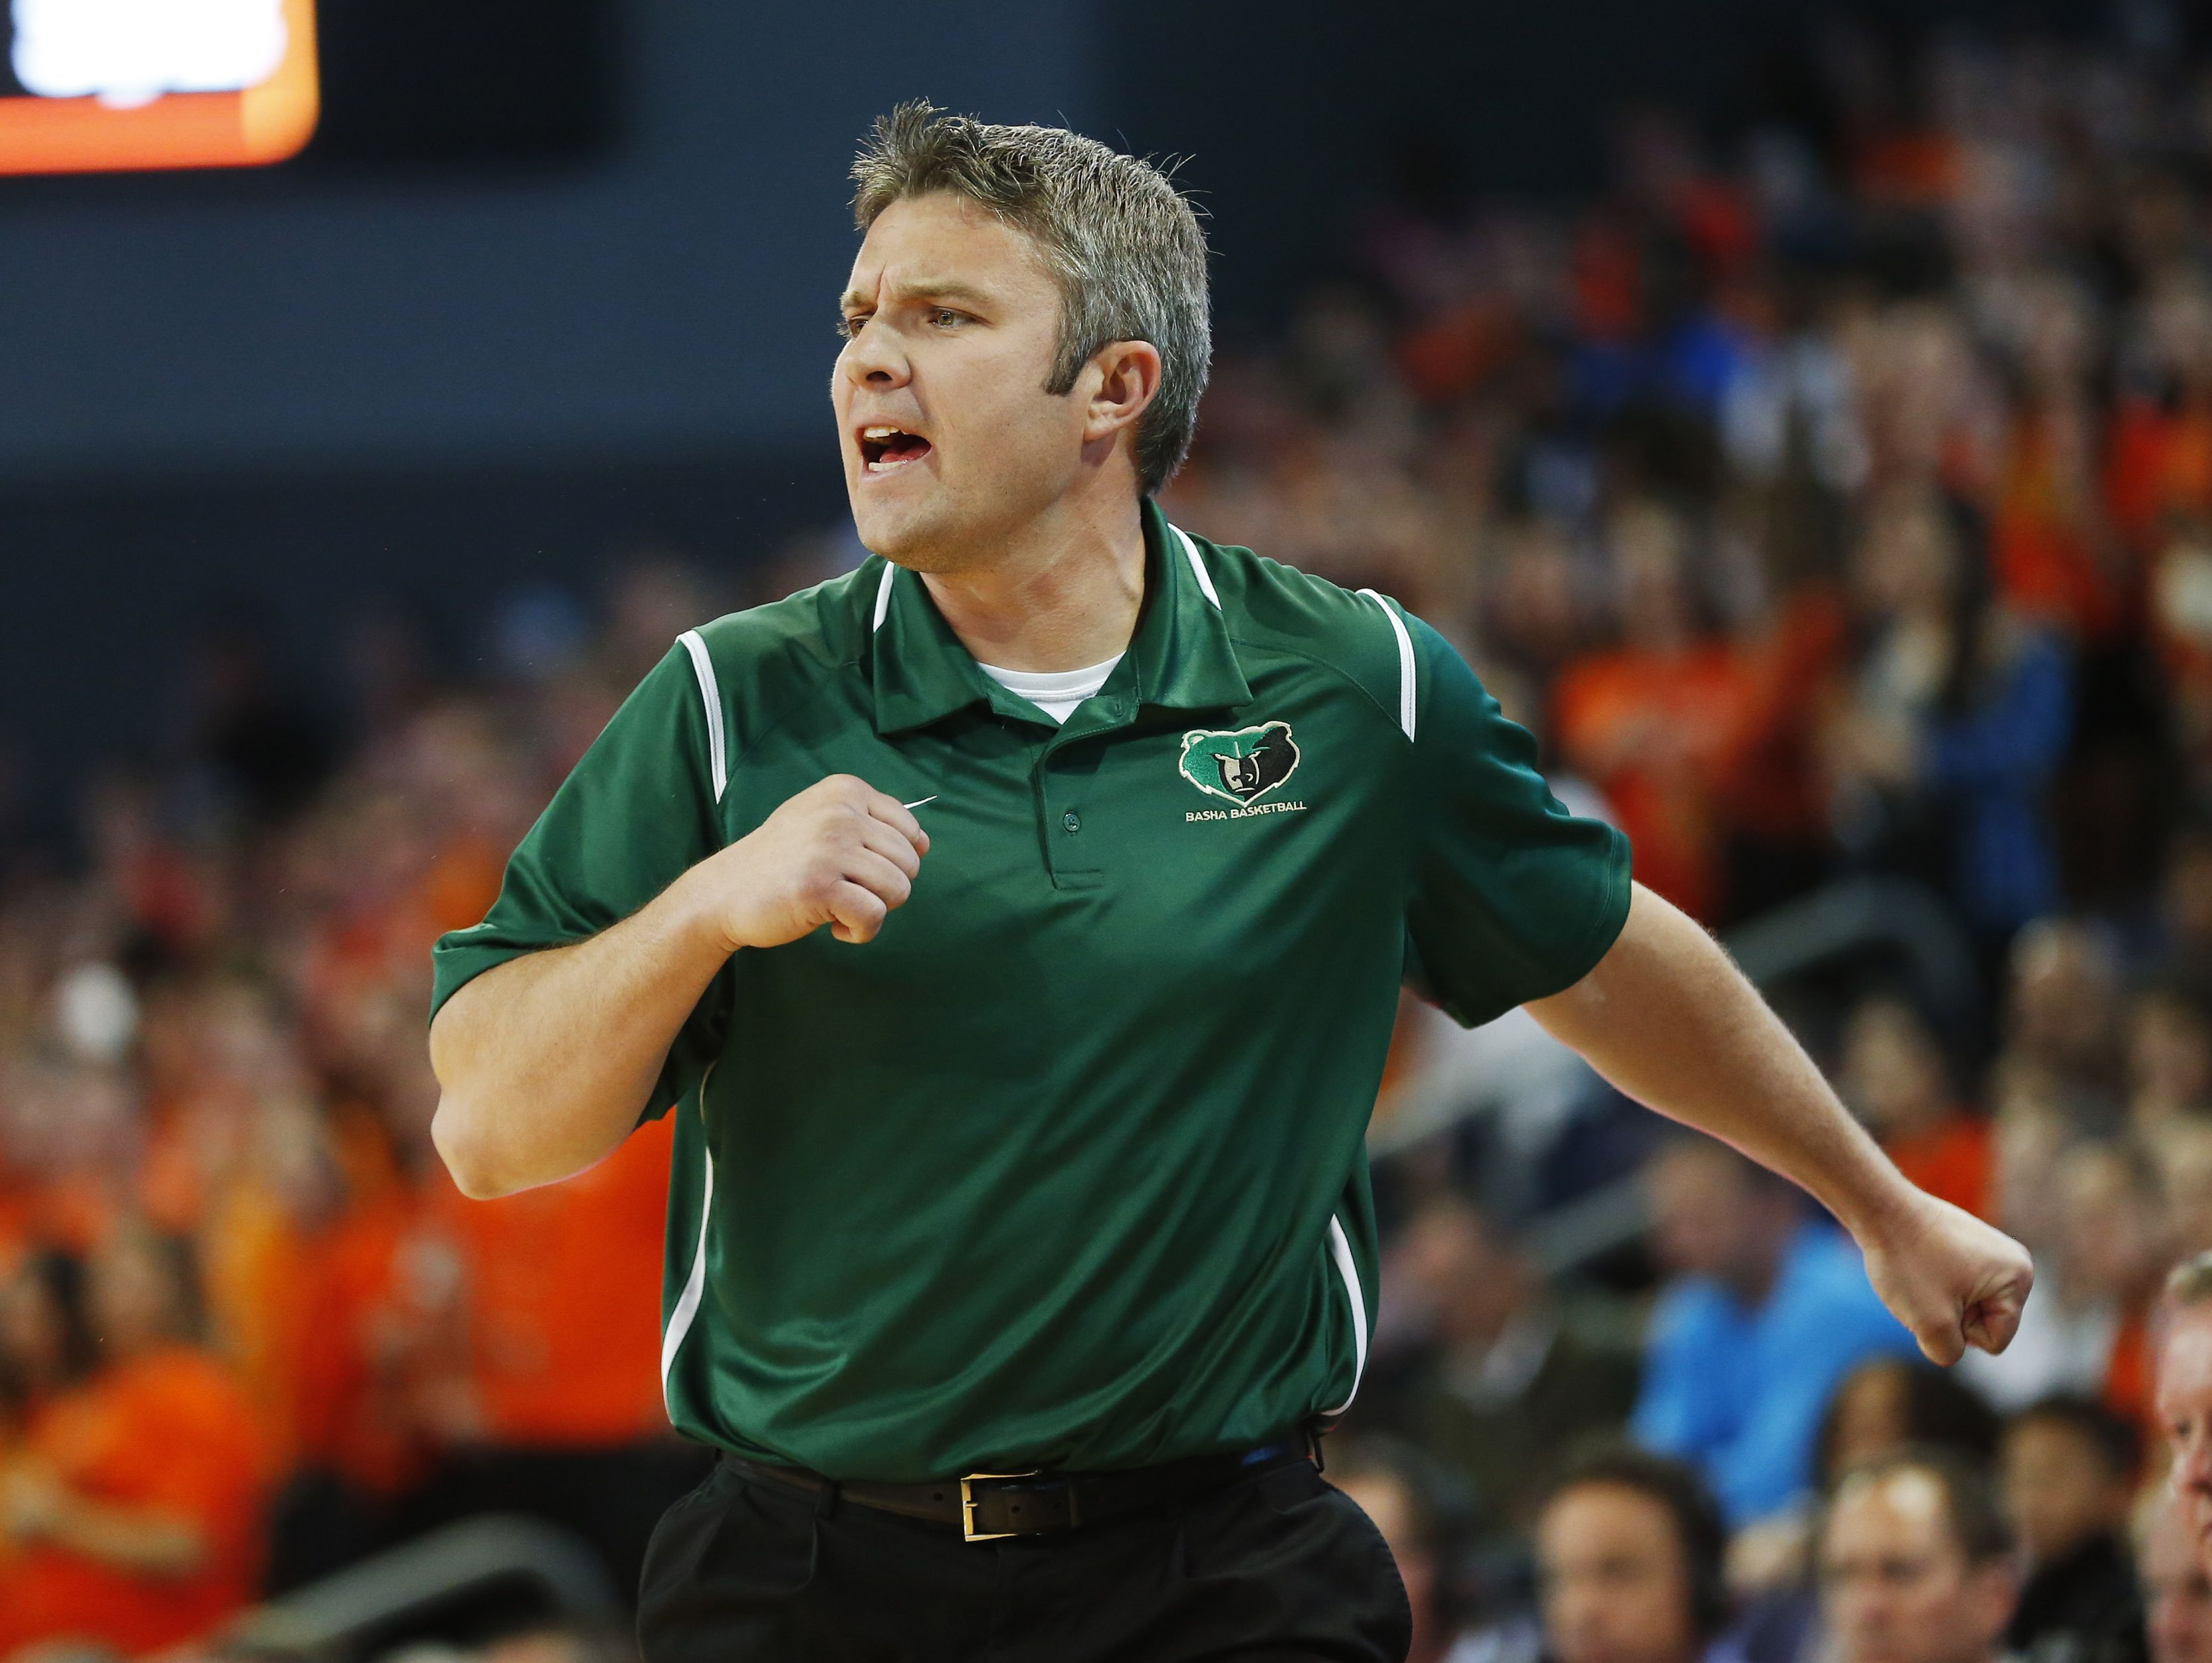 1 state title: Mike Grothaus | Coached Chandler Basha to the 6A title in 2017. His team beat Corona del Sol in the title game, 75-65 and finished the season with a record of 30-1.